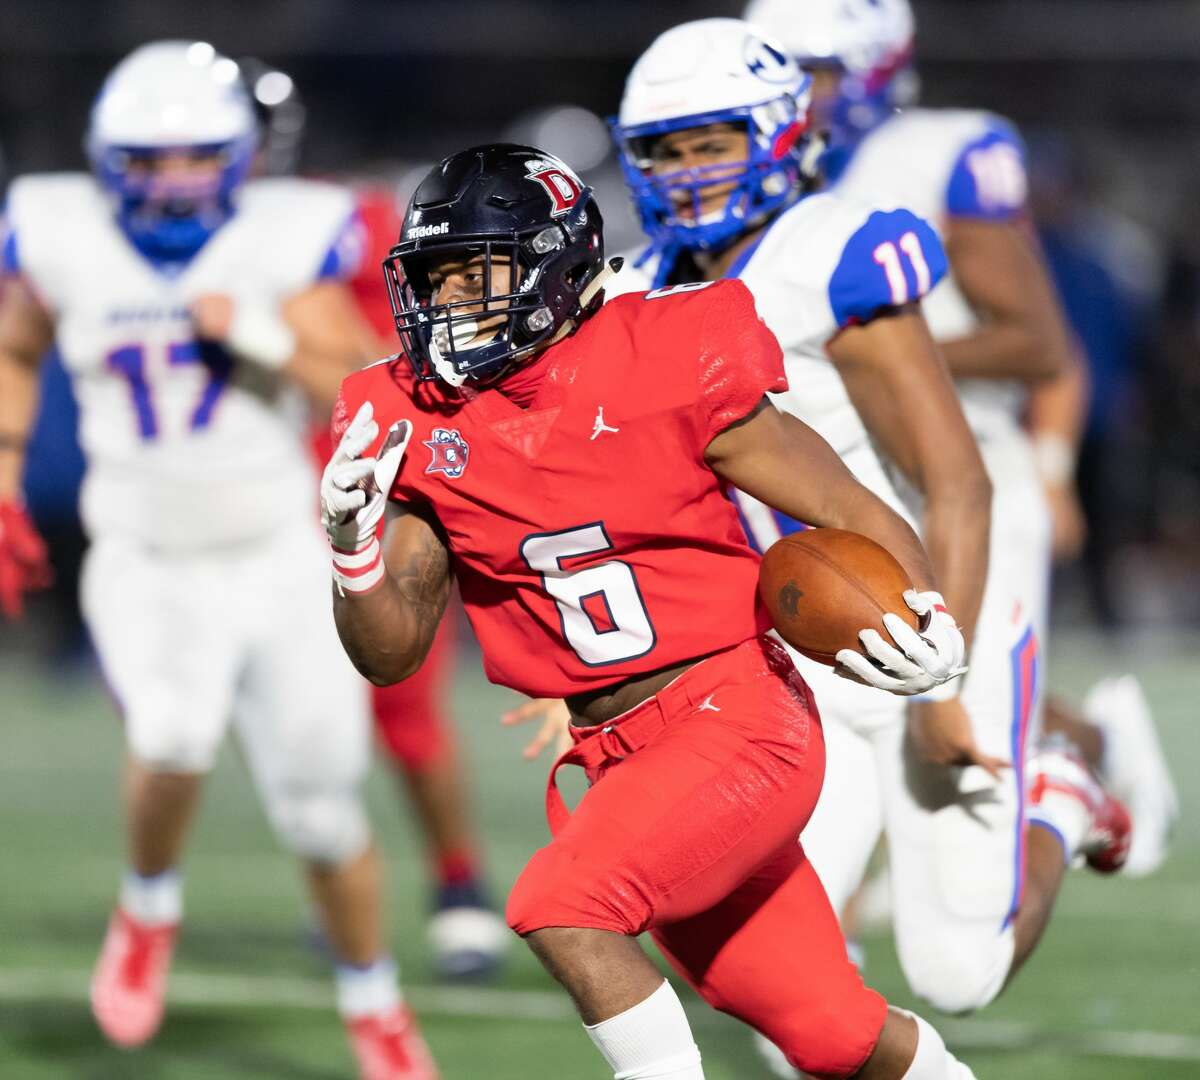 Torrance Burgess Jr. (6) and the undefeated Dawson Eagles face fellow undefeated North Shore on Thursday night.